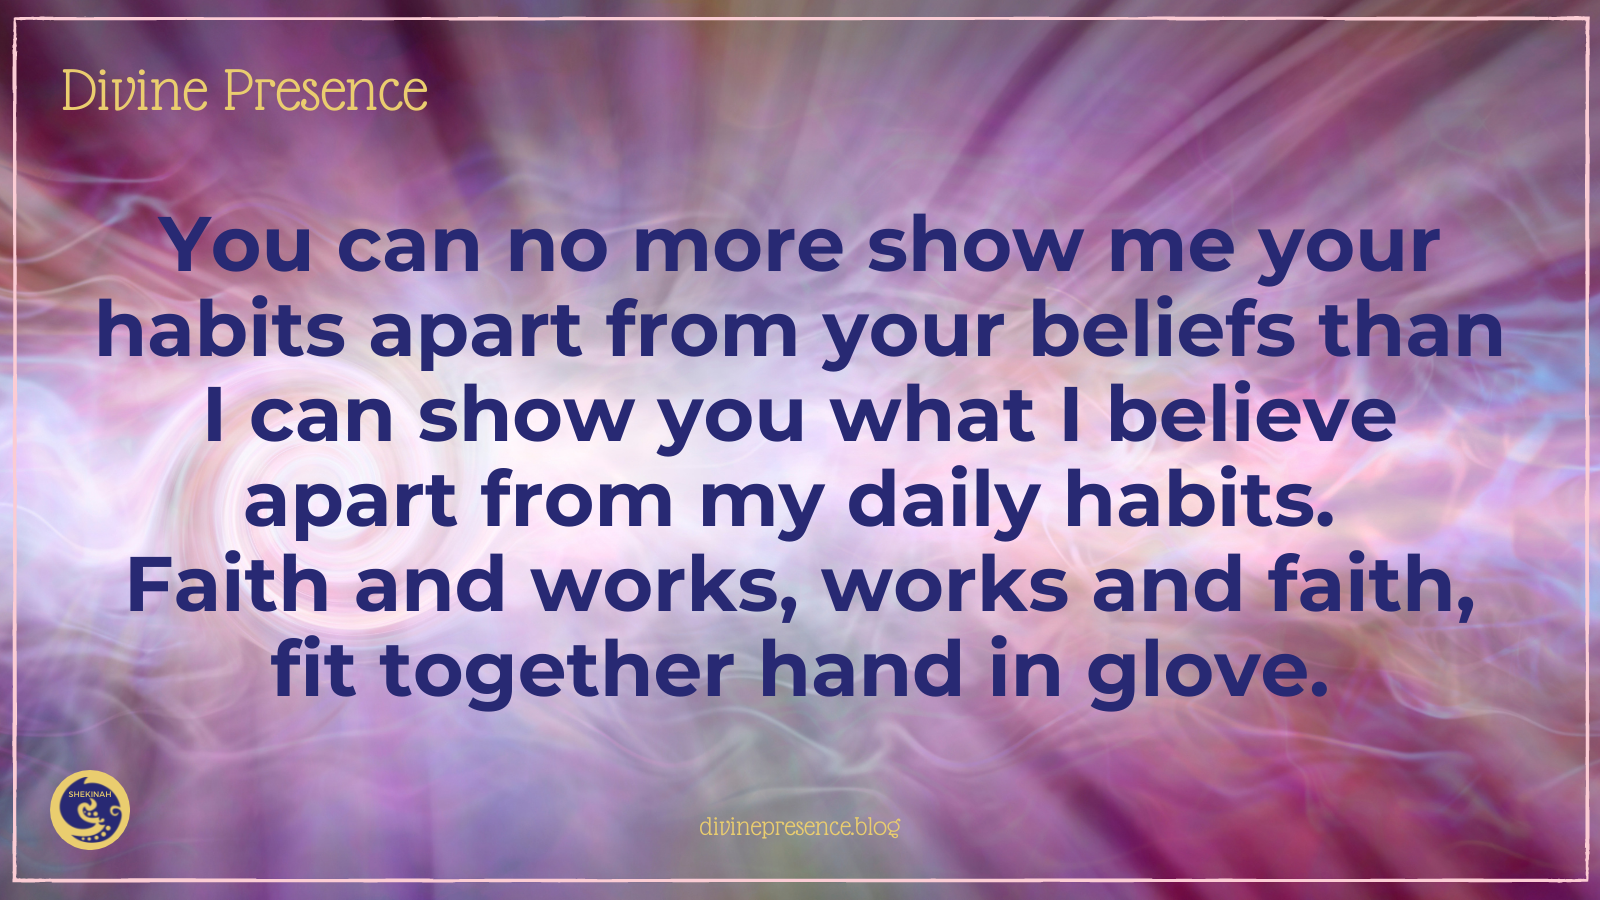 You can no more show me your habits apart from your beliefs than I can show you what I believe apart from my daily habits. Faith and works, works and faith, fit together hand in glove.